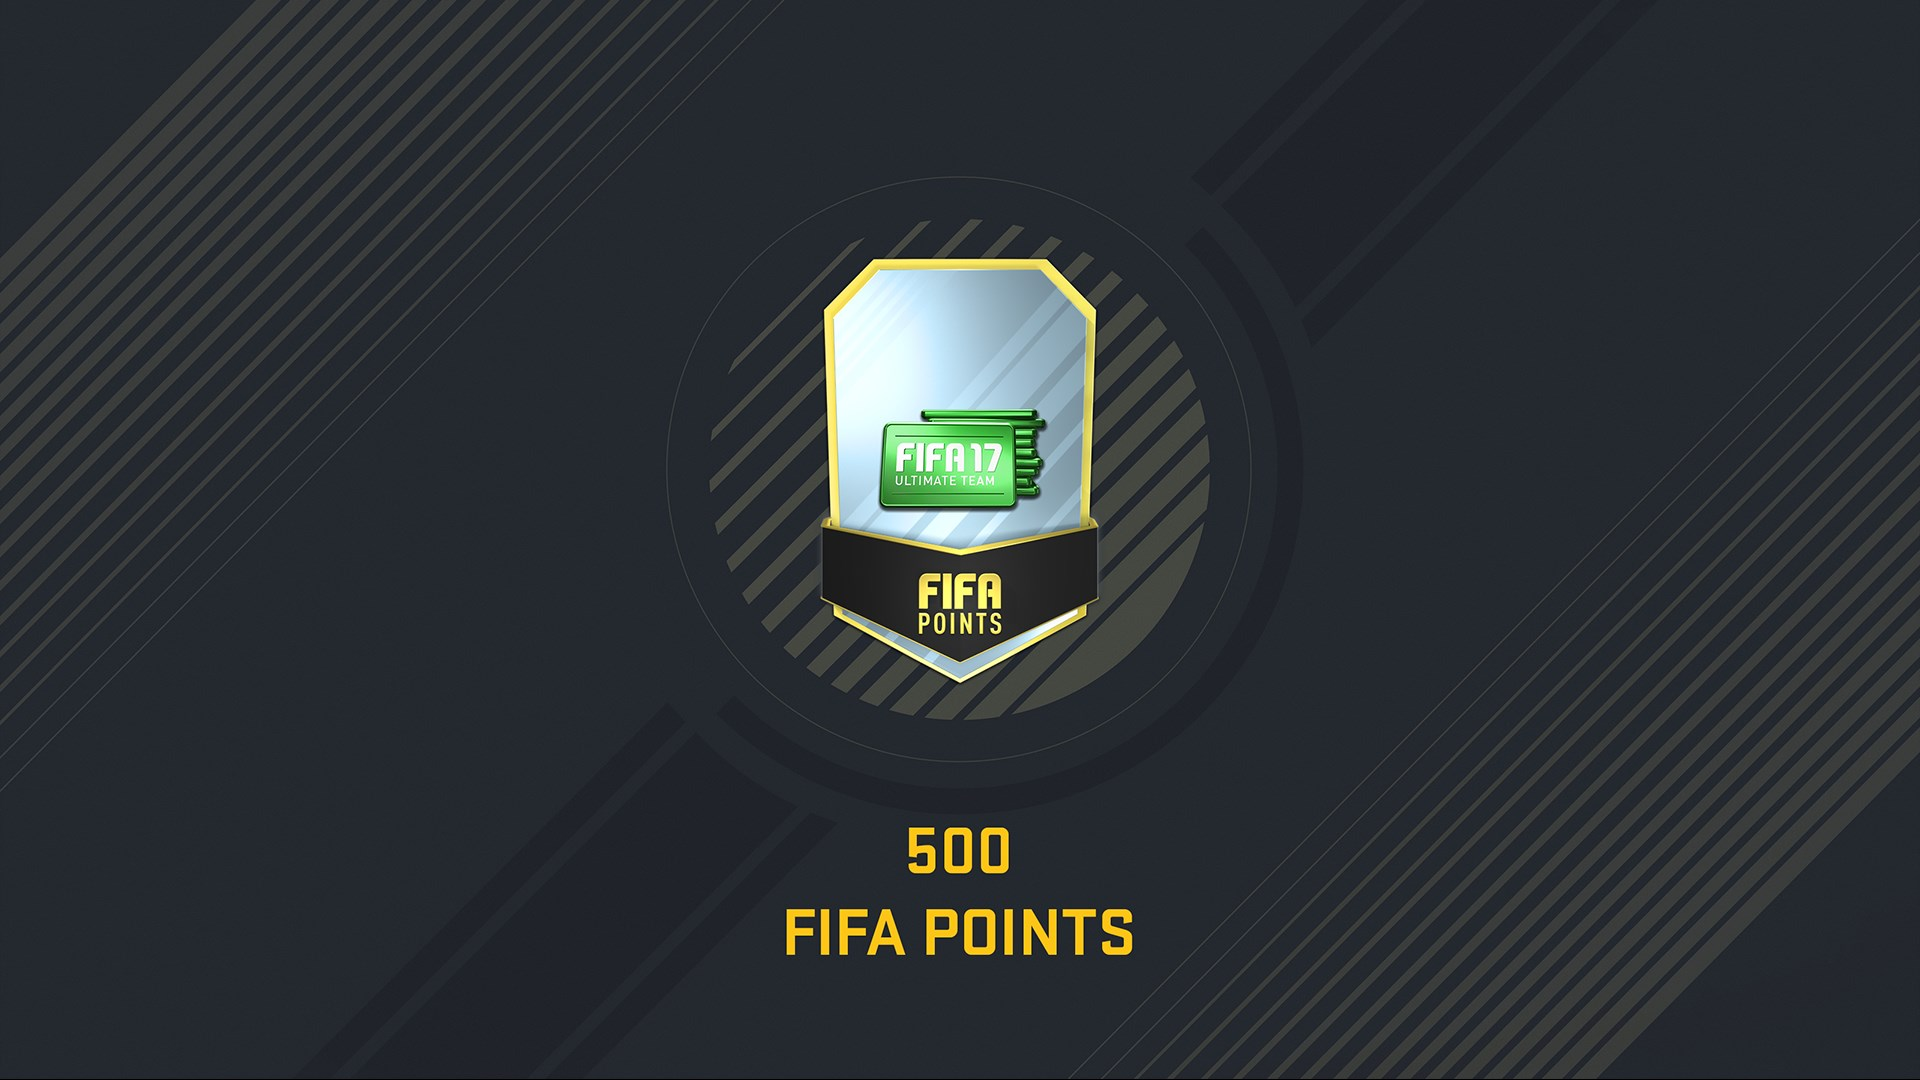 500 FIFA 17 Points Pack